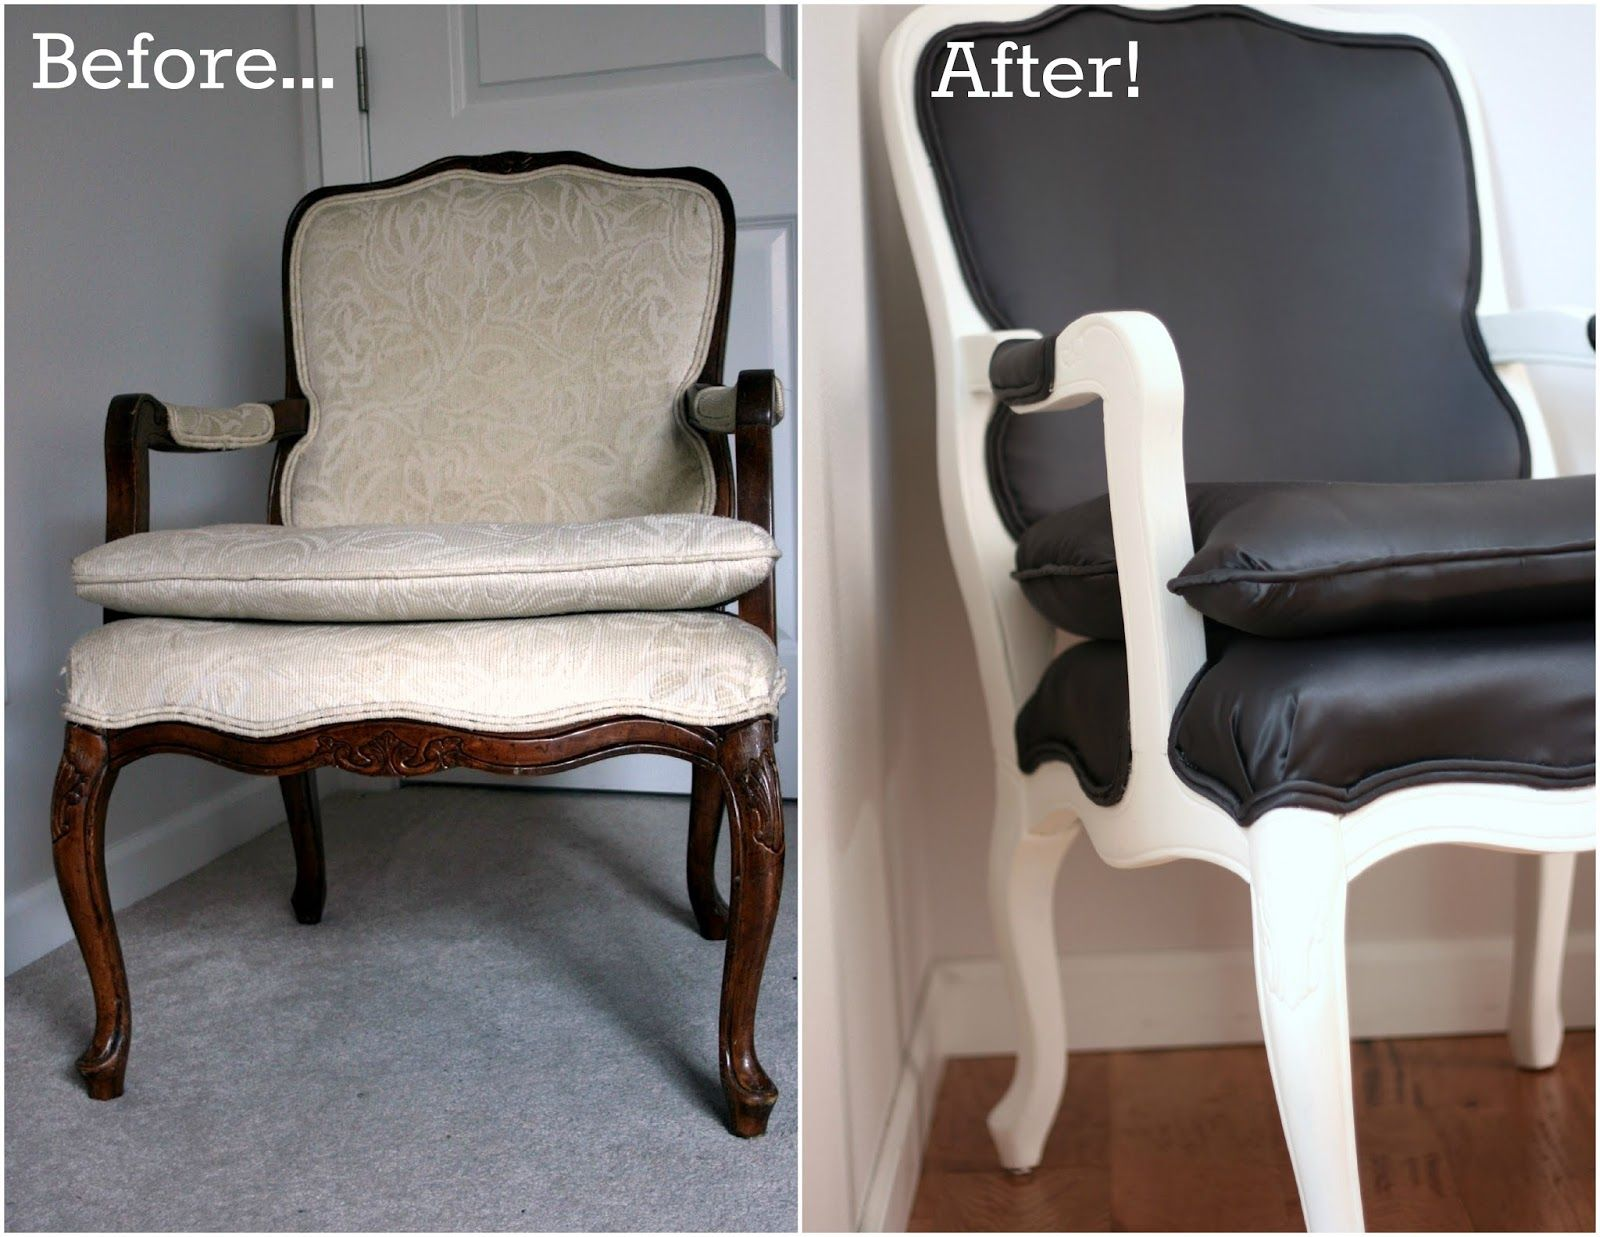 How to reupholster a louis chair - The Finished Product My Refurbished Louis Chair Part 3